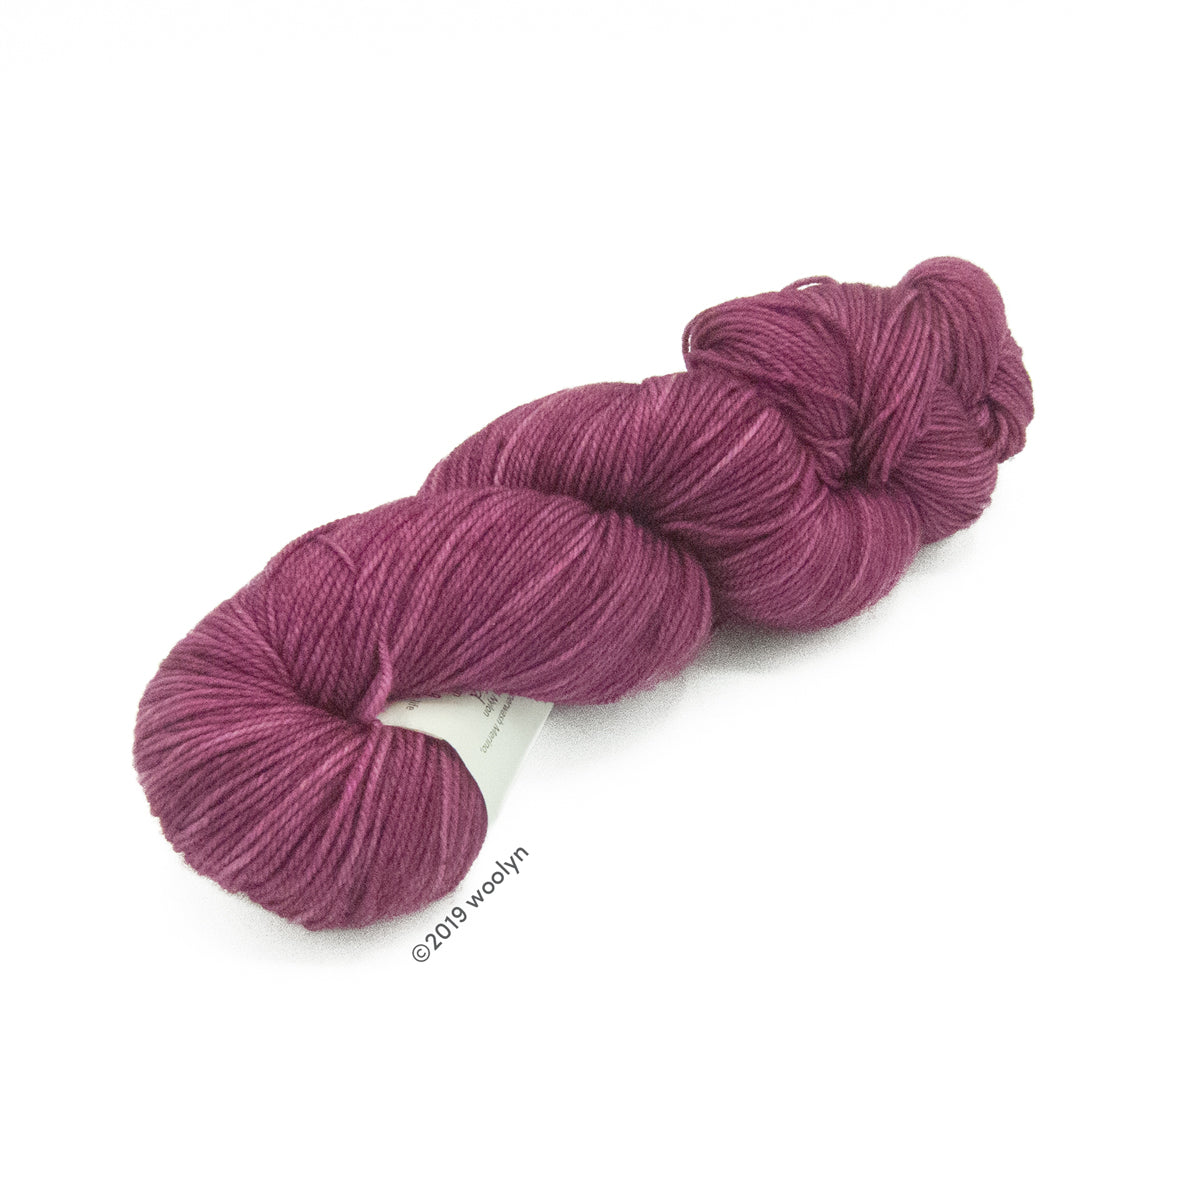 Hand dyed  fingering weight yarn in dark mulberry tonal  shades twisted into a skein.